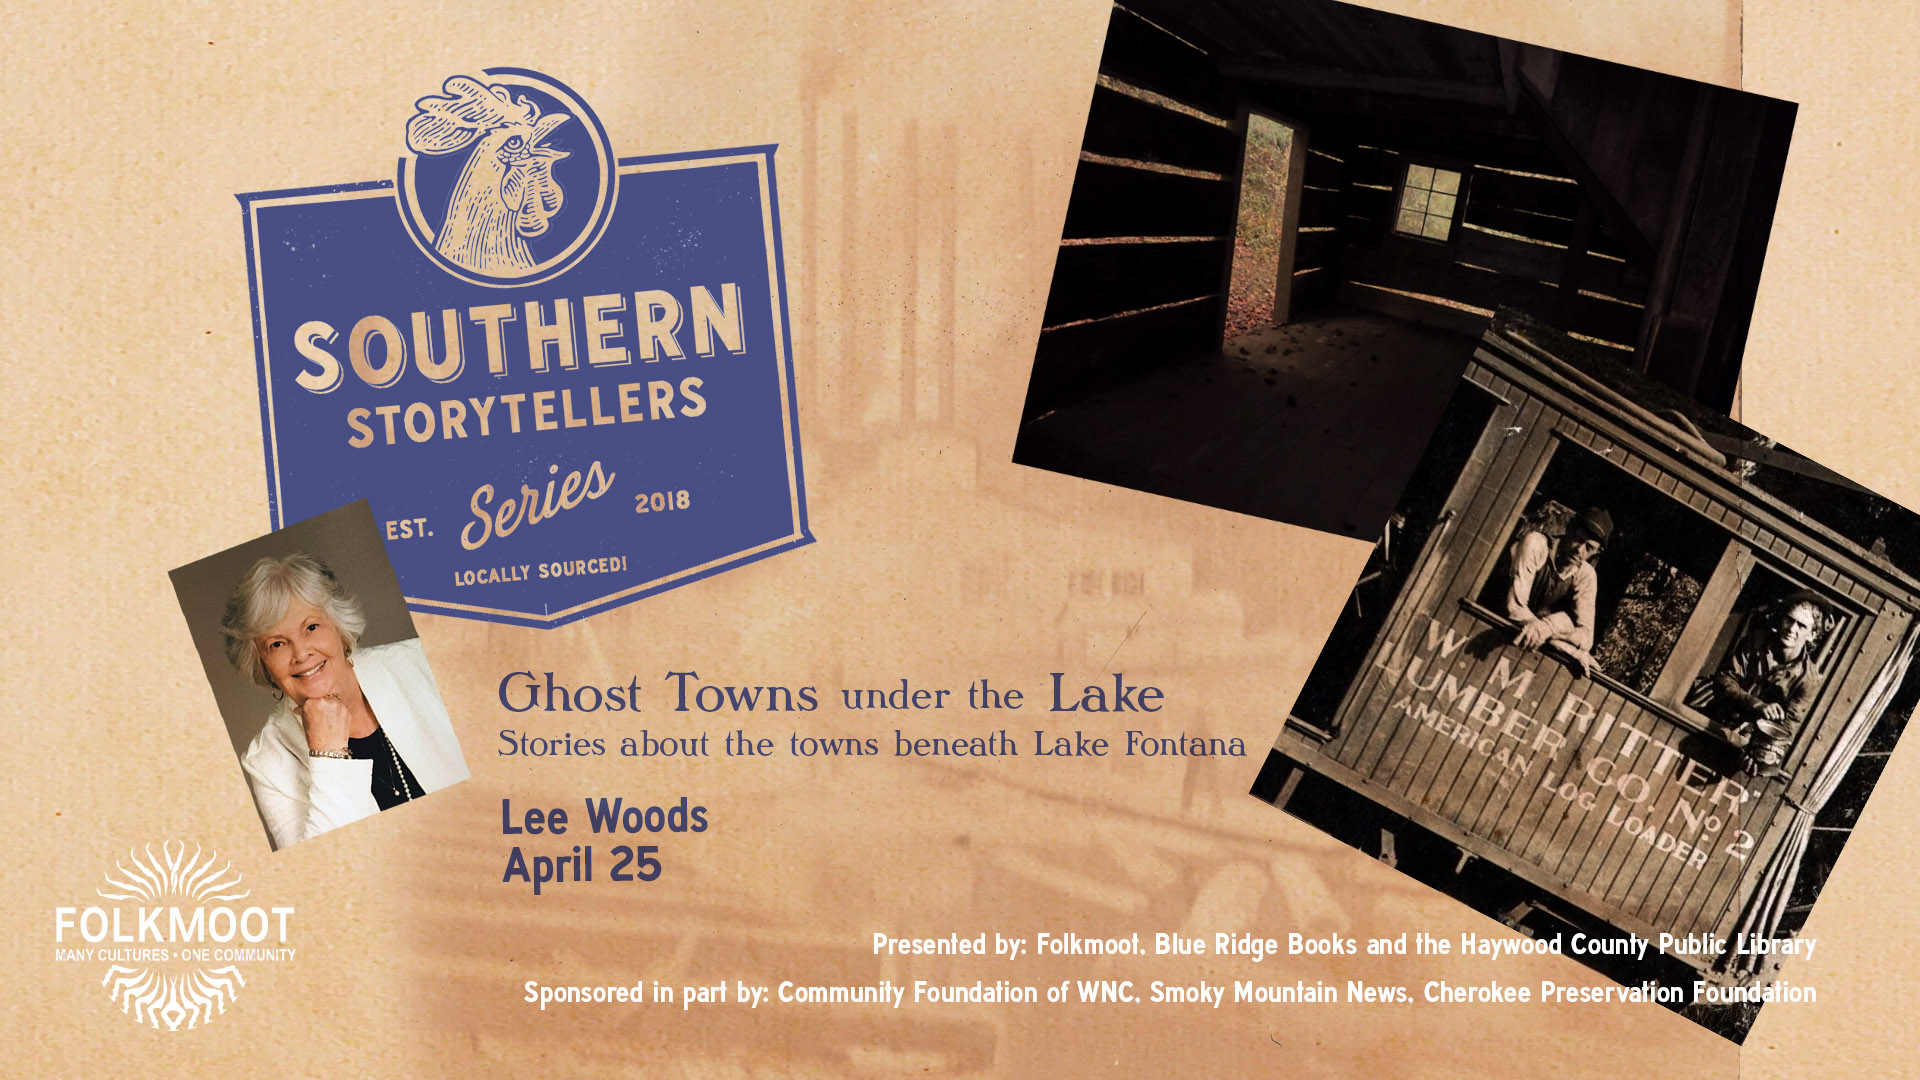 Southern Storytellers Series: Lee Woods @ Folkmoot Friendship Center